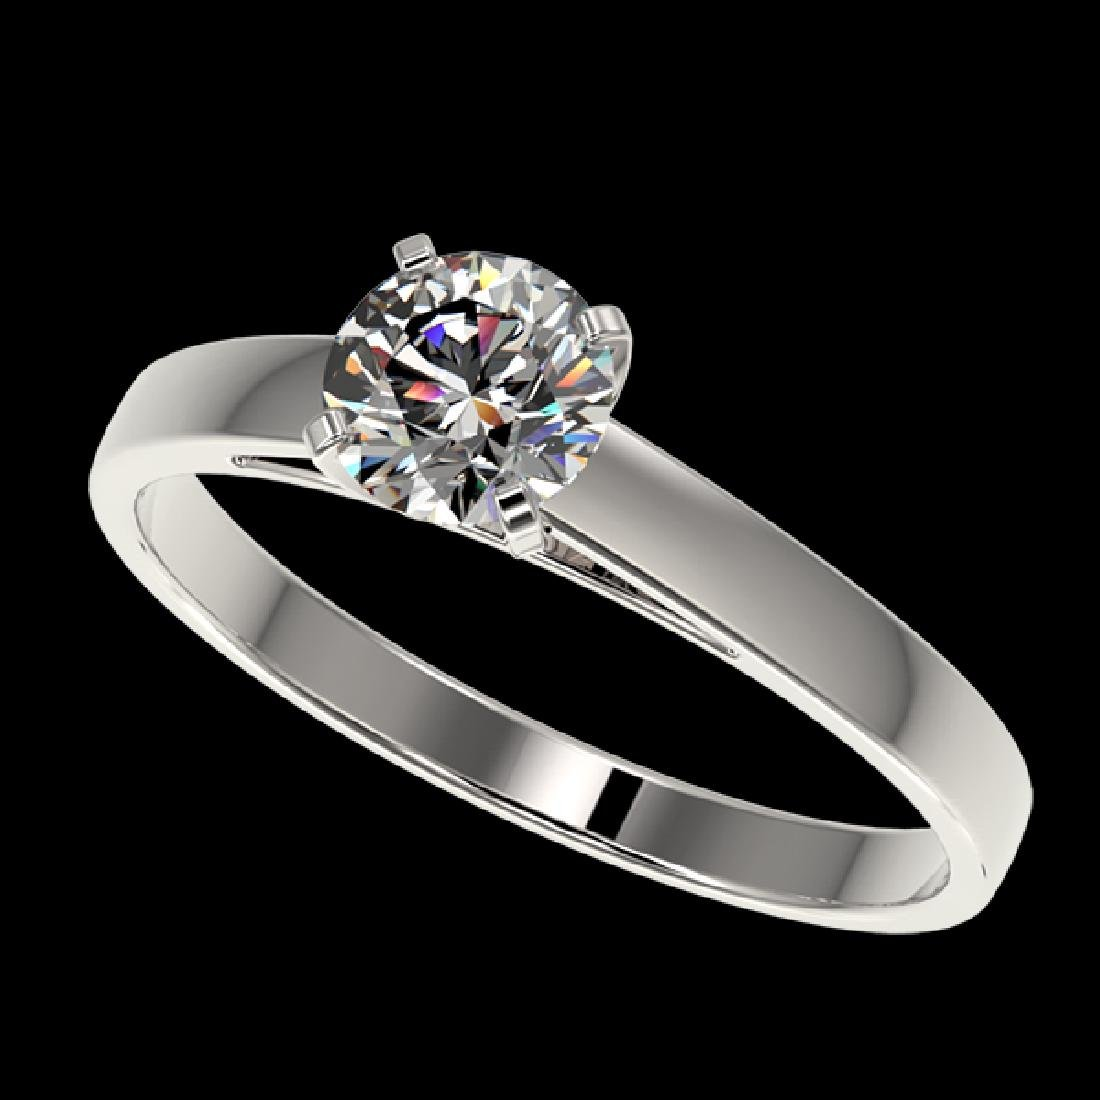 0.75 CTW Certified G-Si Quality Diamond Solitaire